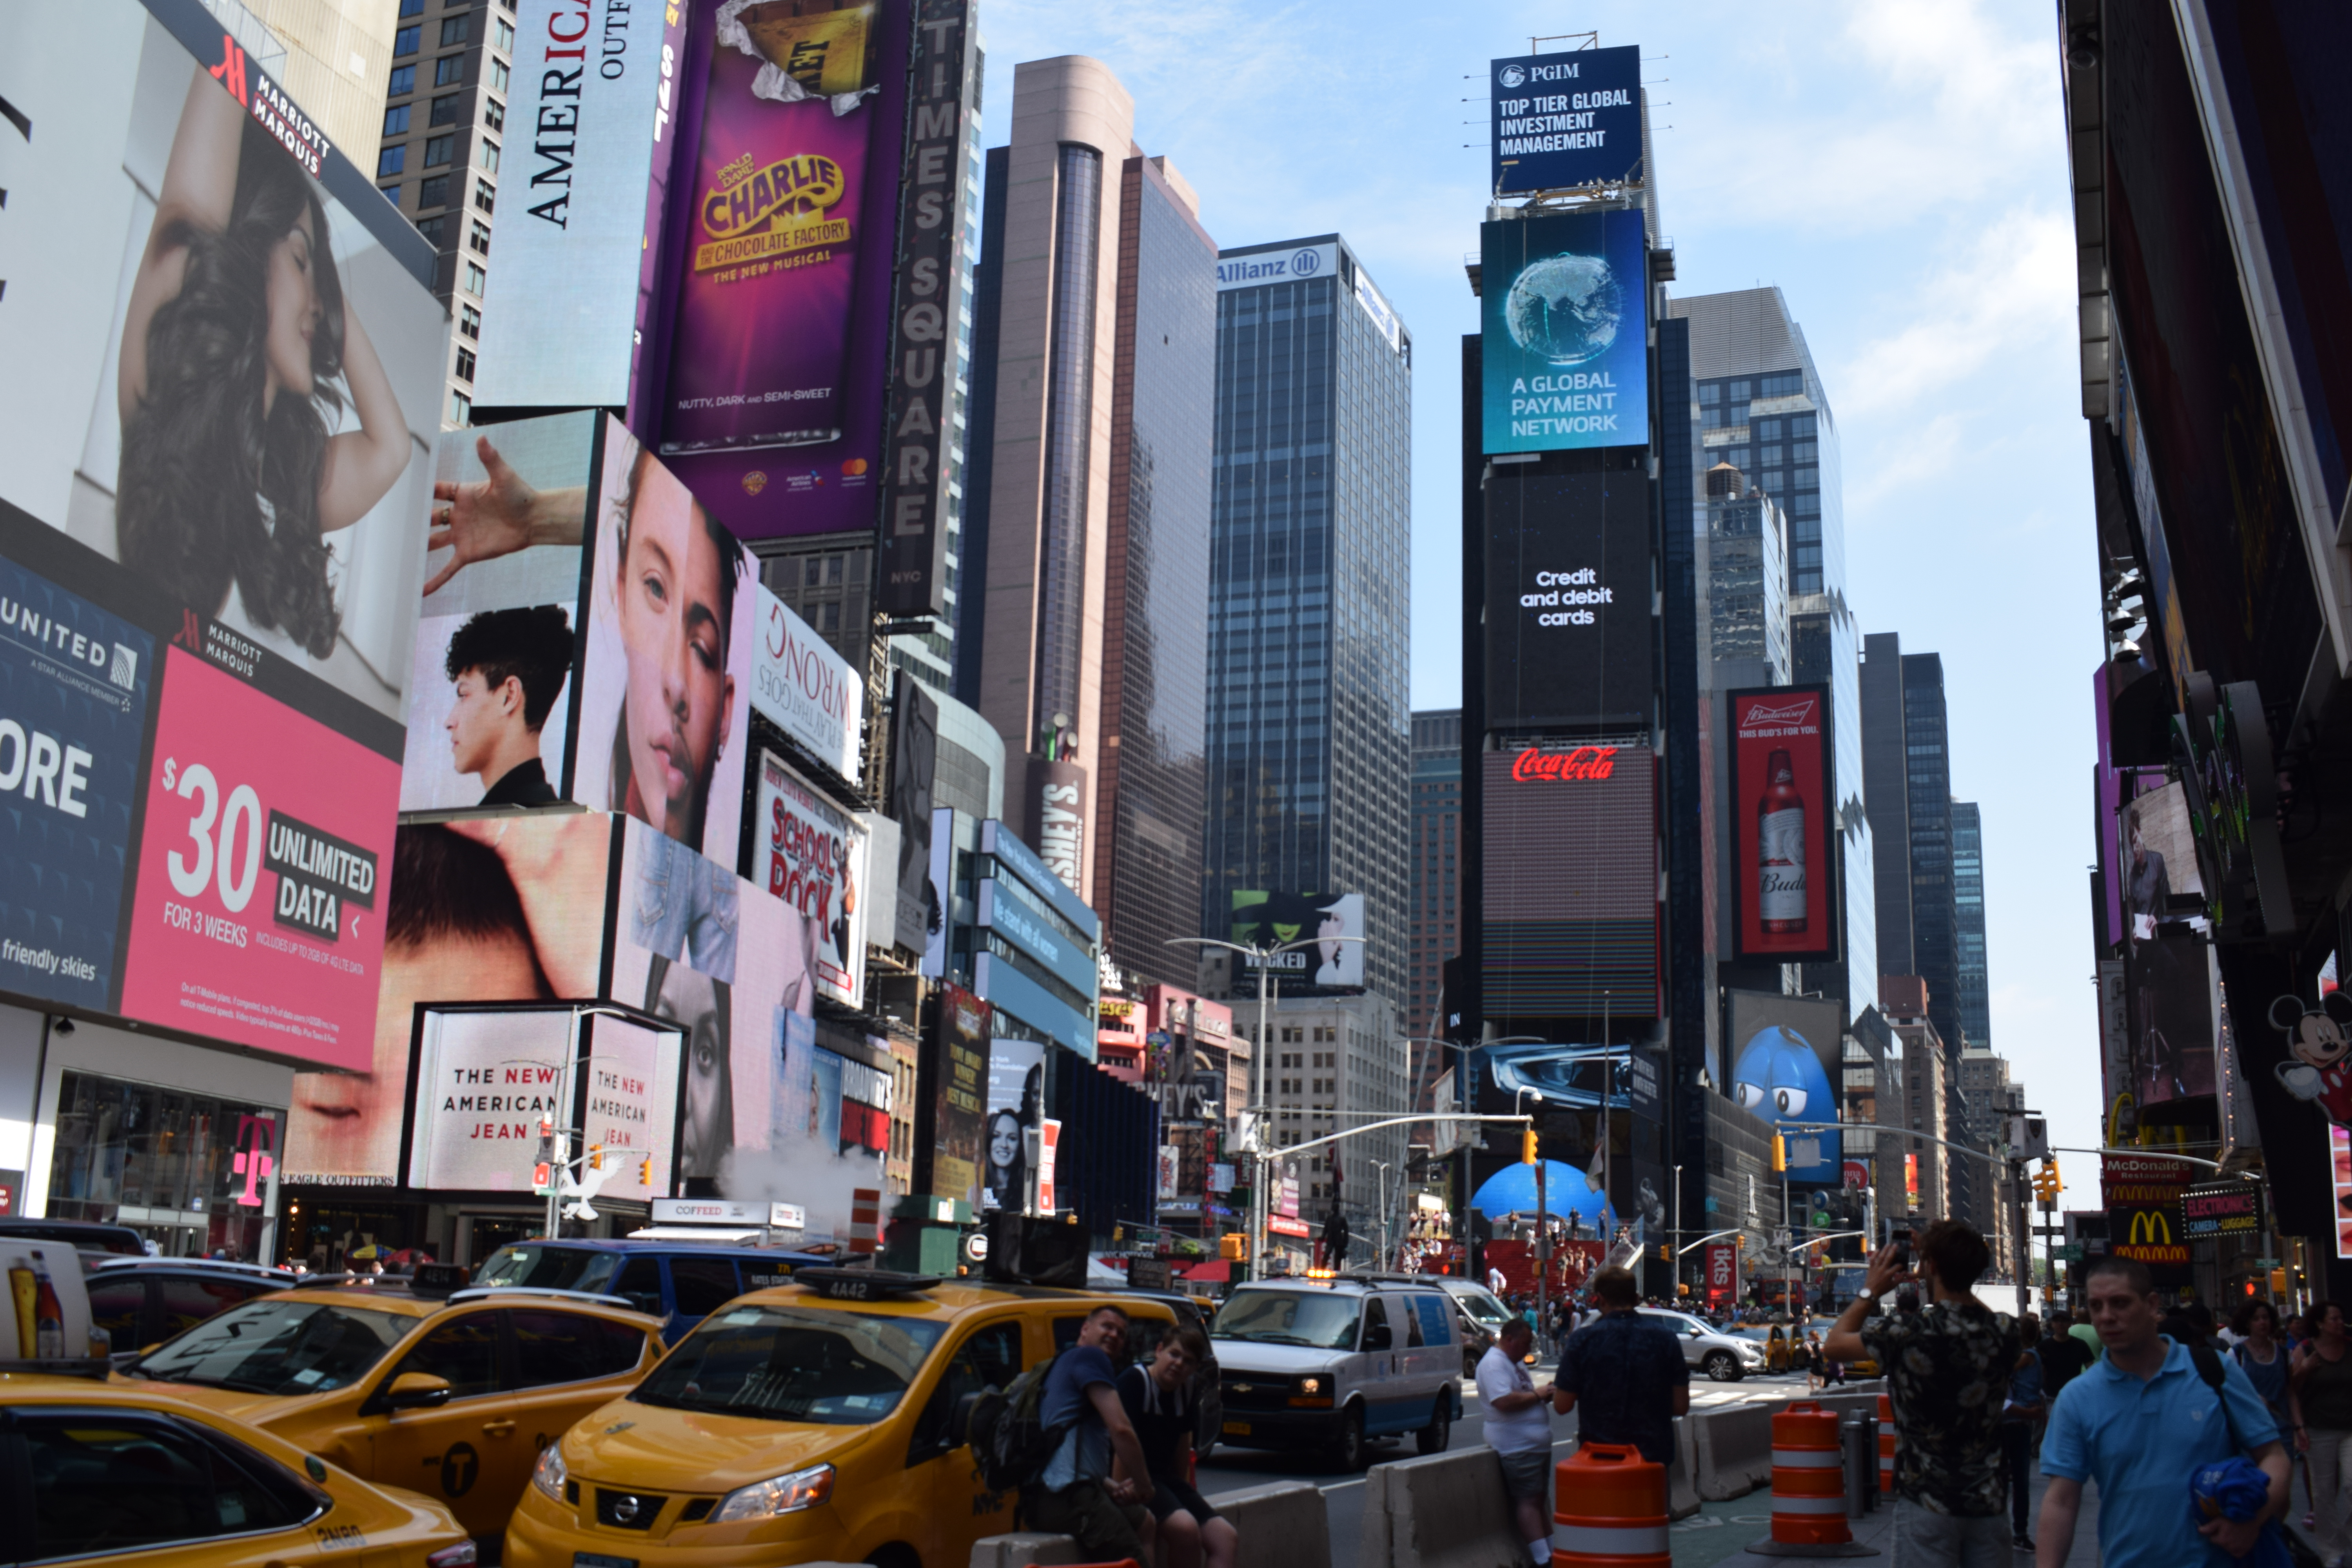 Times Square New York City.JPG